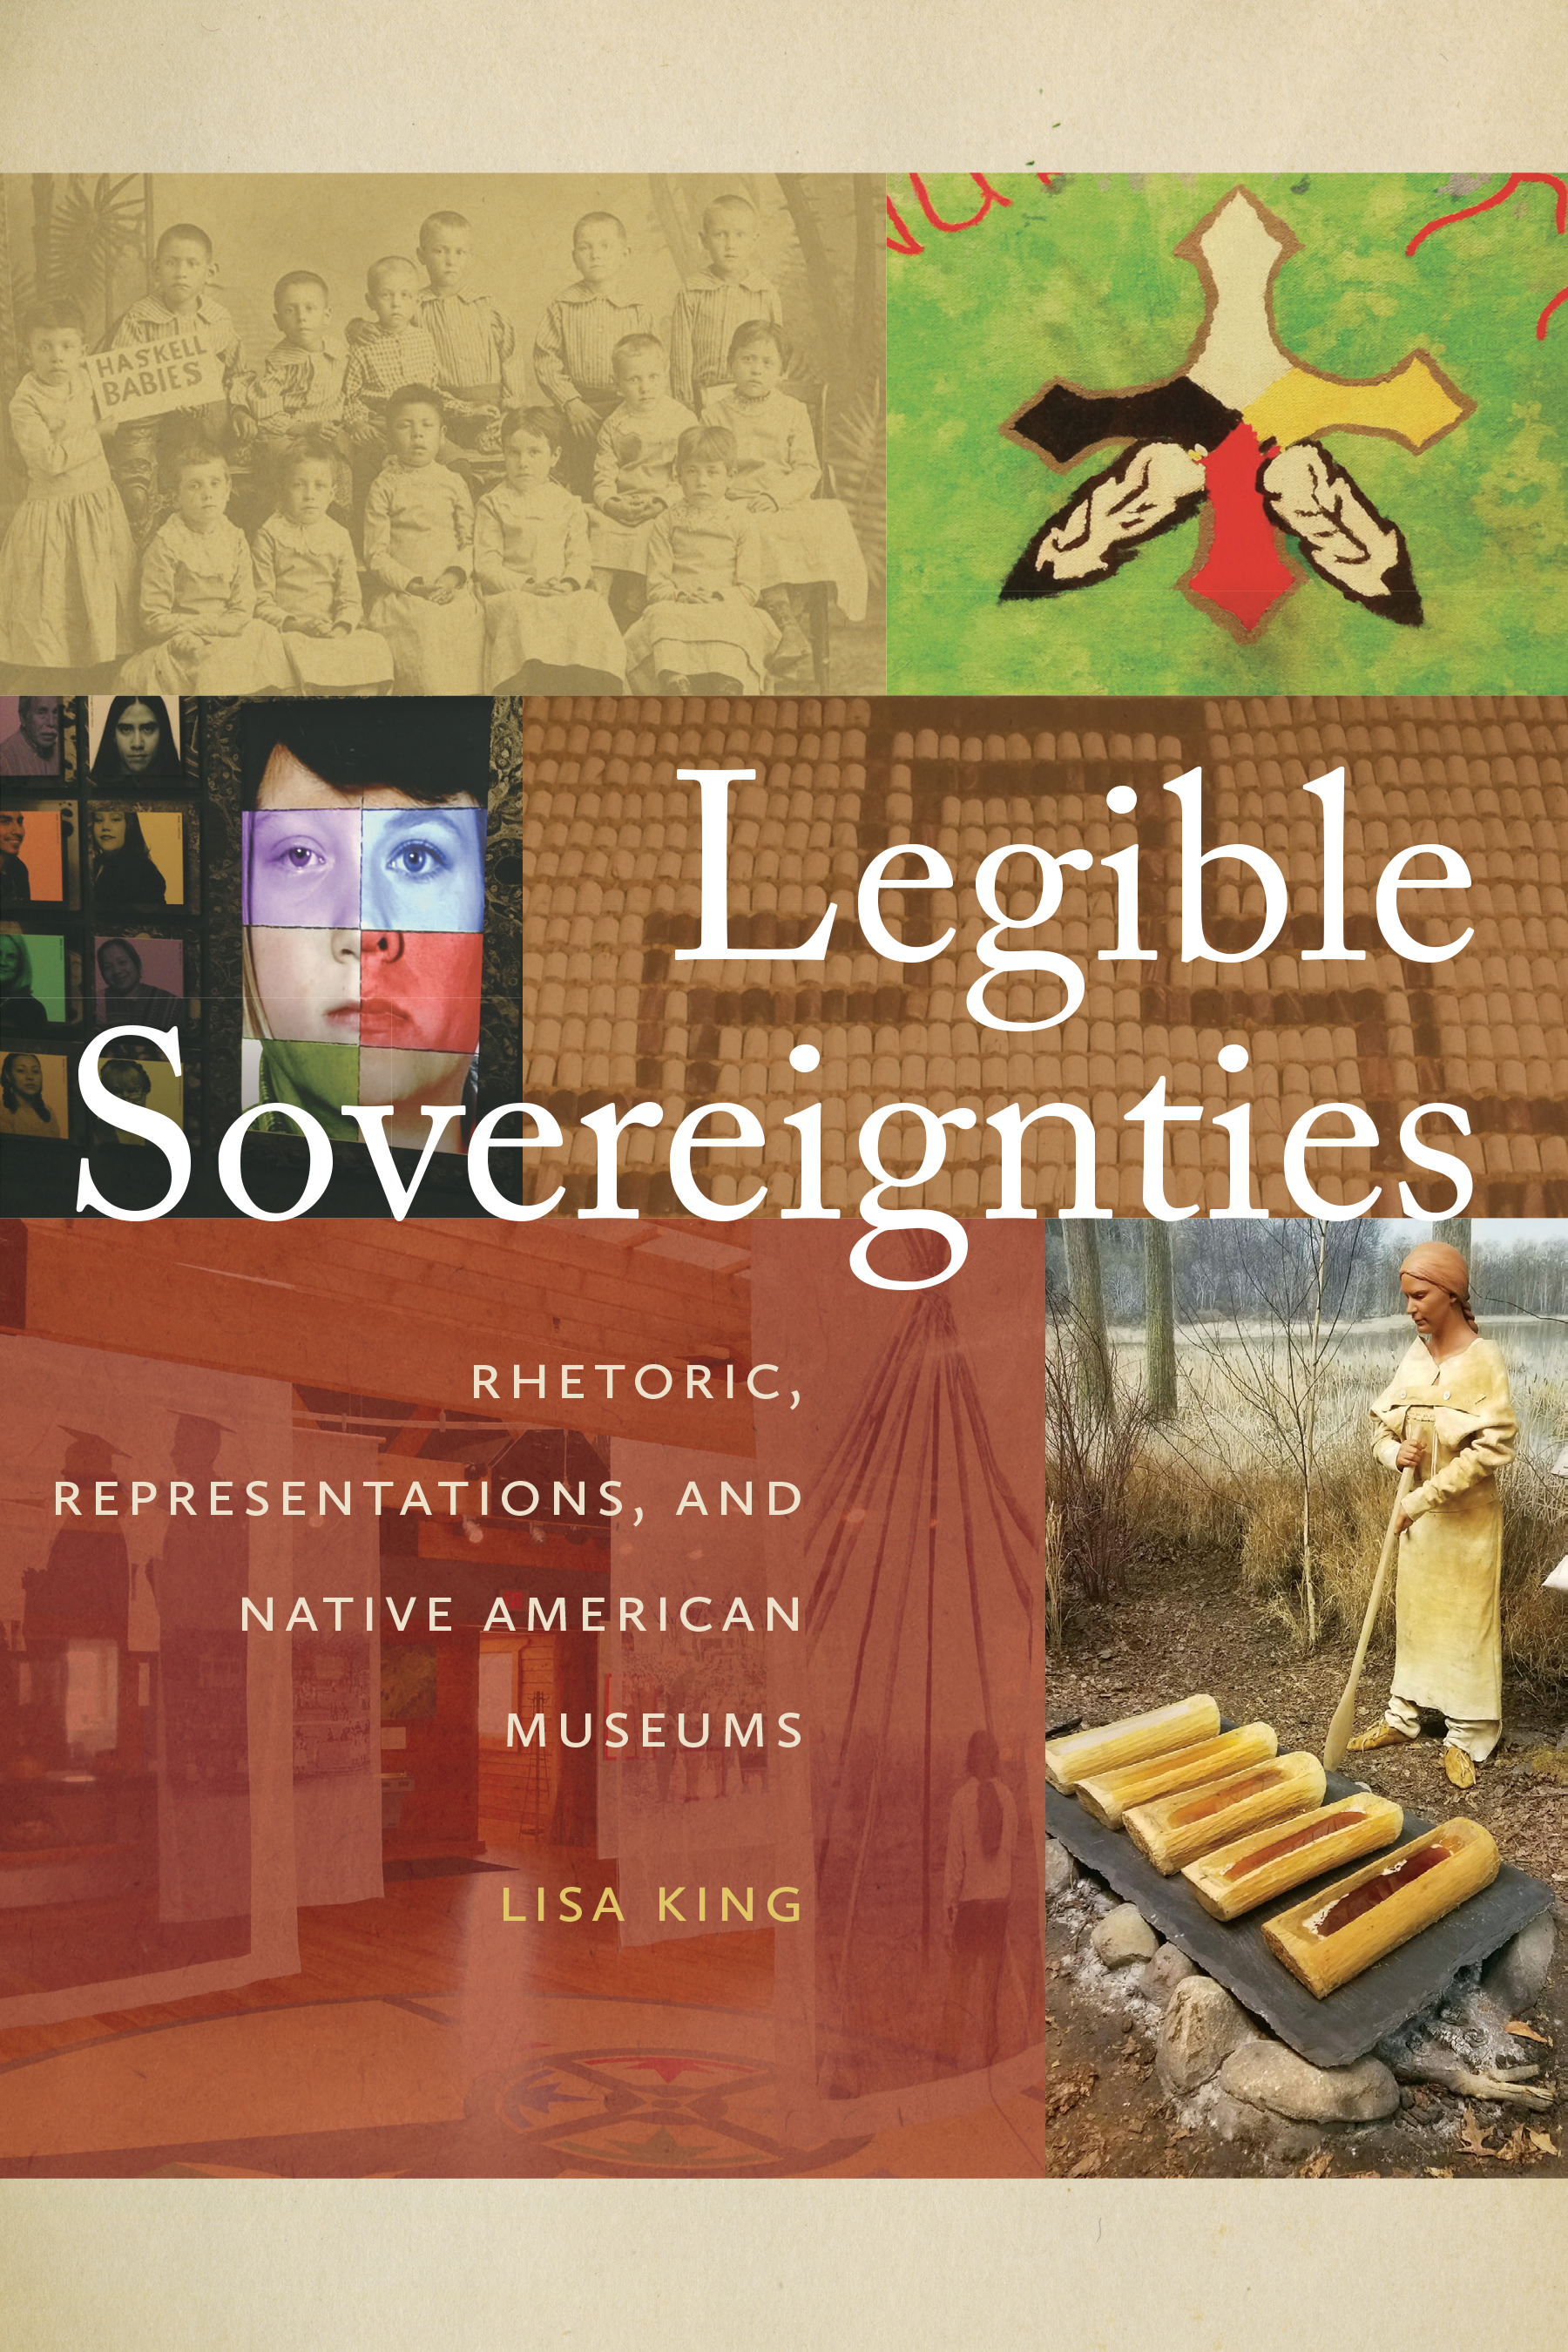 Legible Sovereignties: Rhetoric, Representations, and Native American Museums